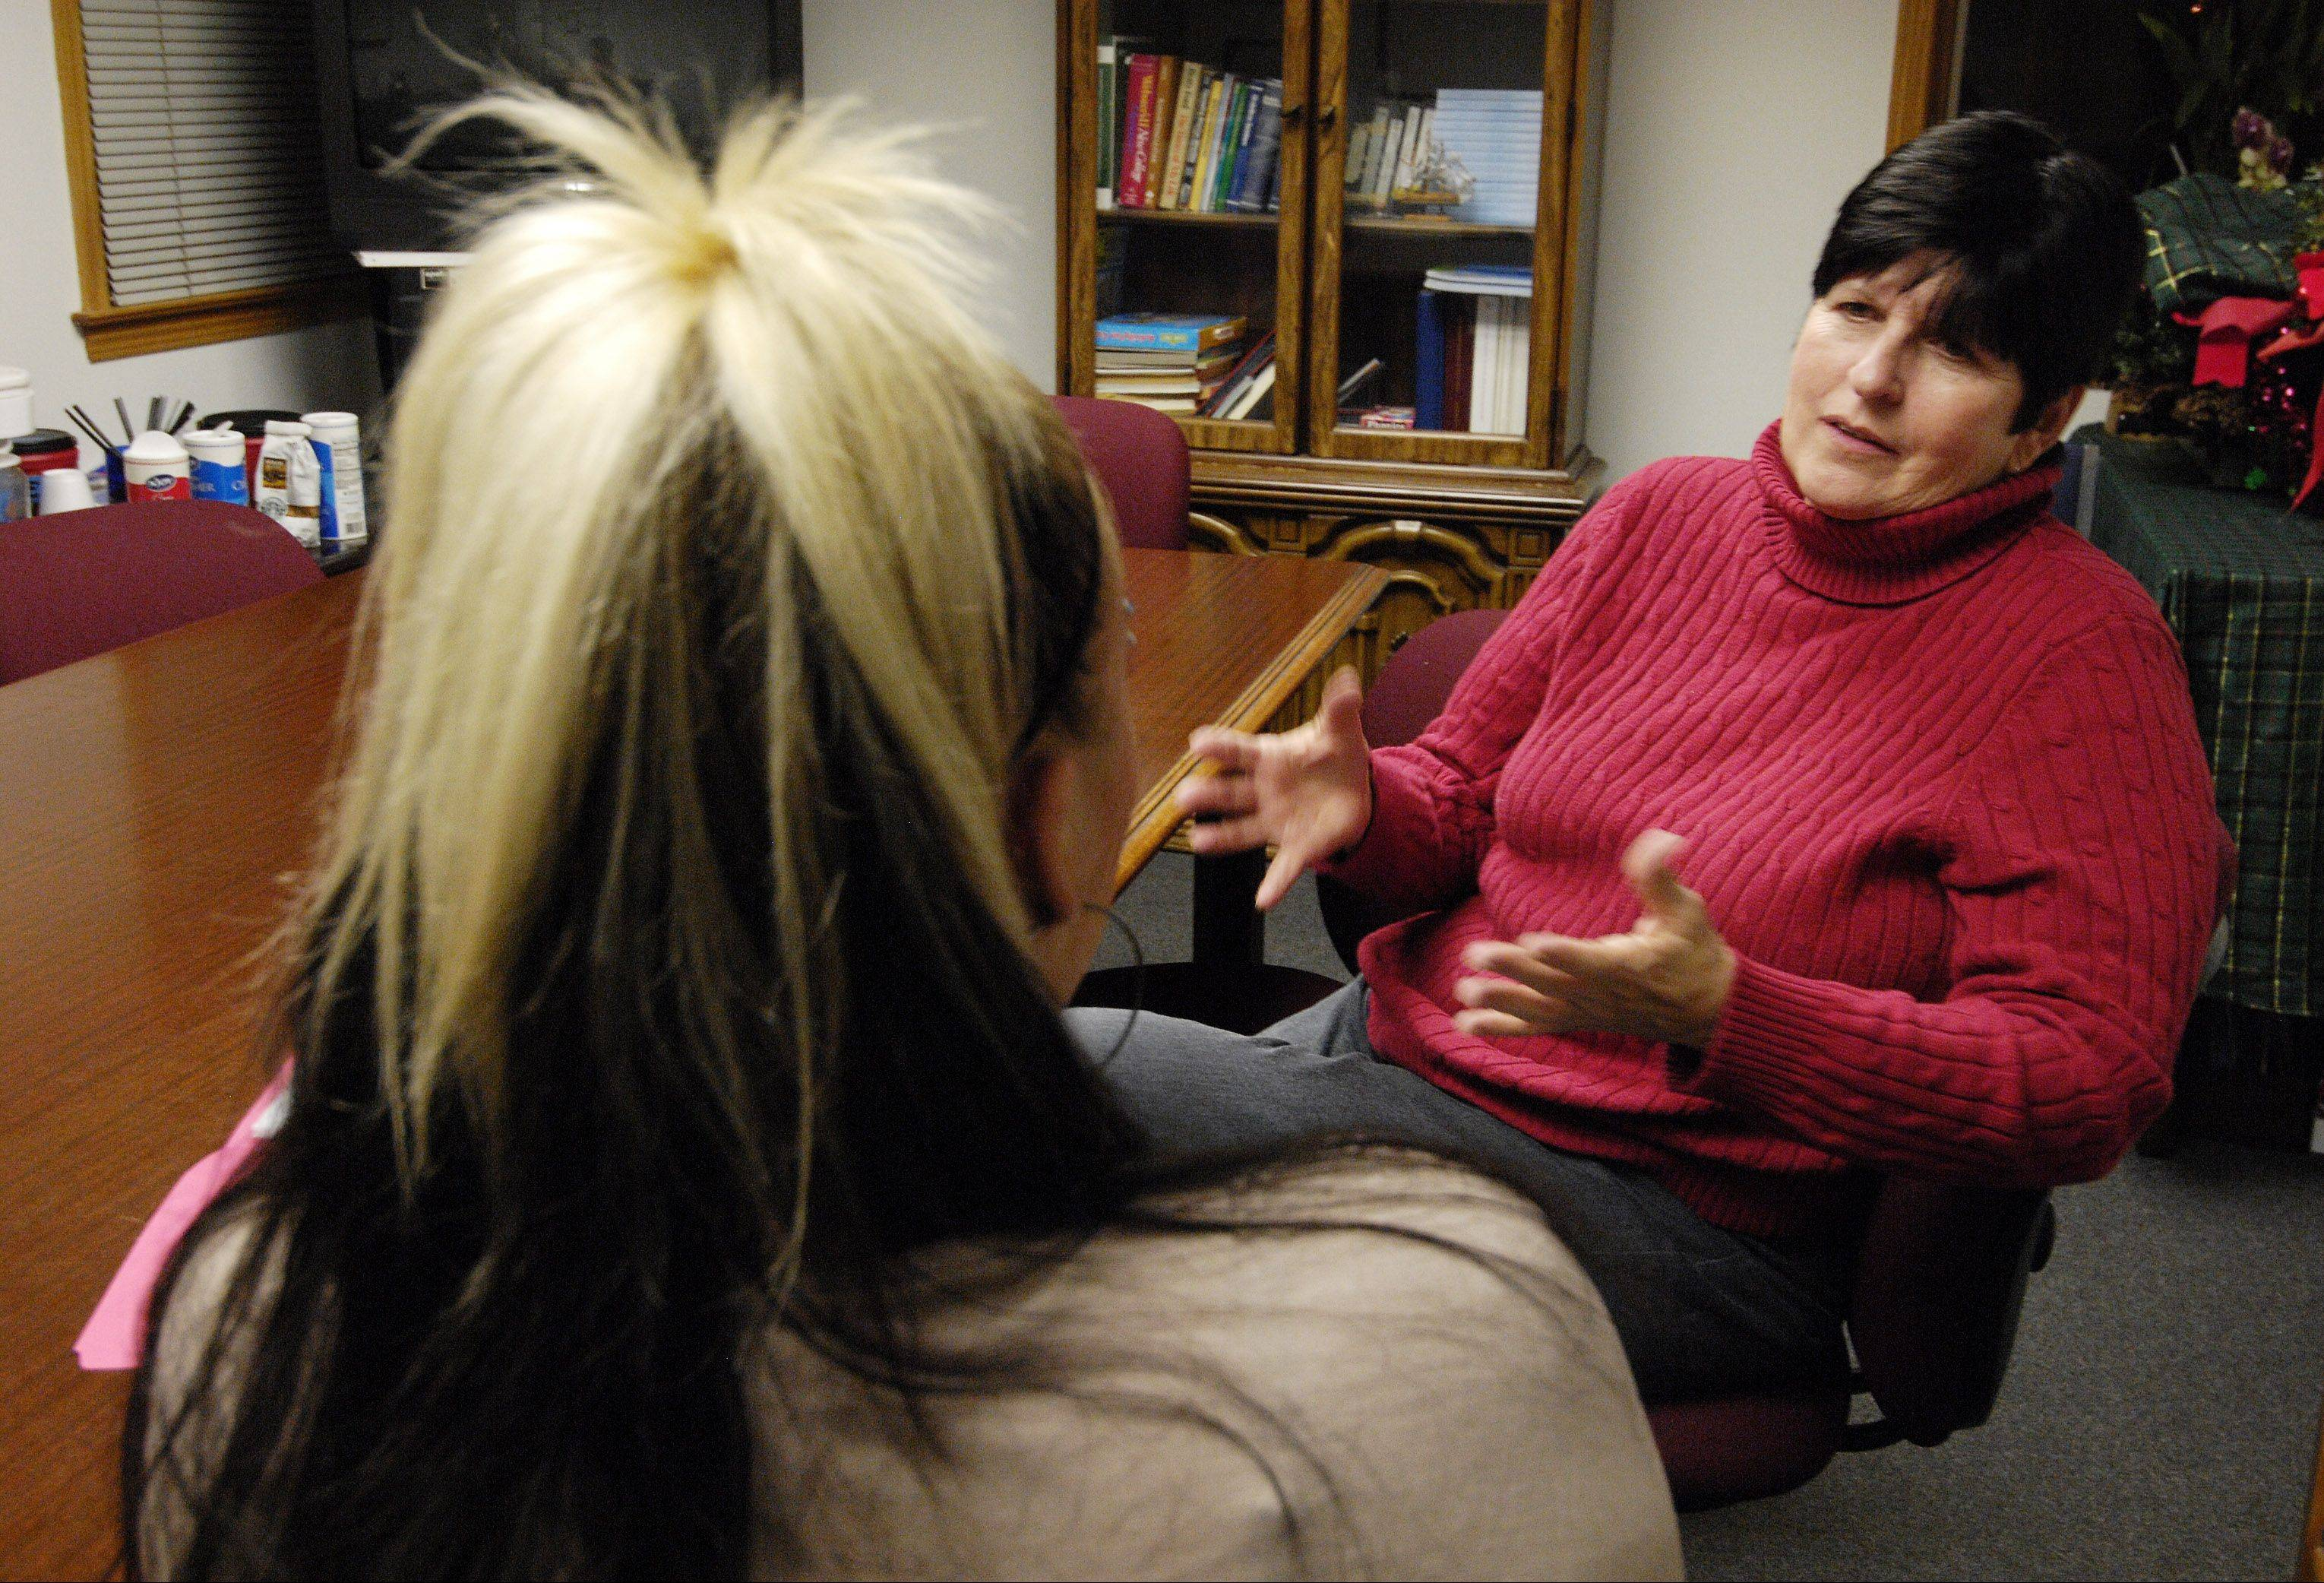 Serenity House counselor and Recovery Home Program Manager Donna Foyle talks with a resident and recovering heroin addict at the Addison facility. Serenity House helps people restart their lives after drug addiction.